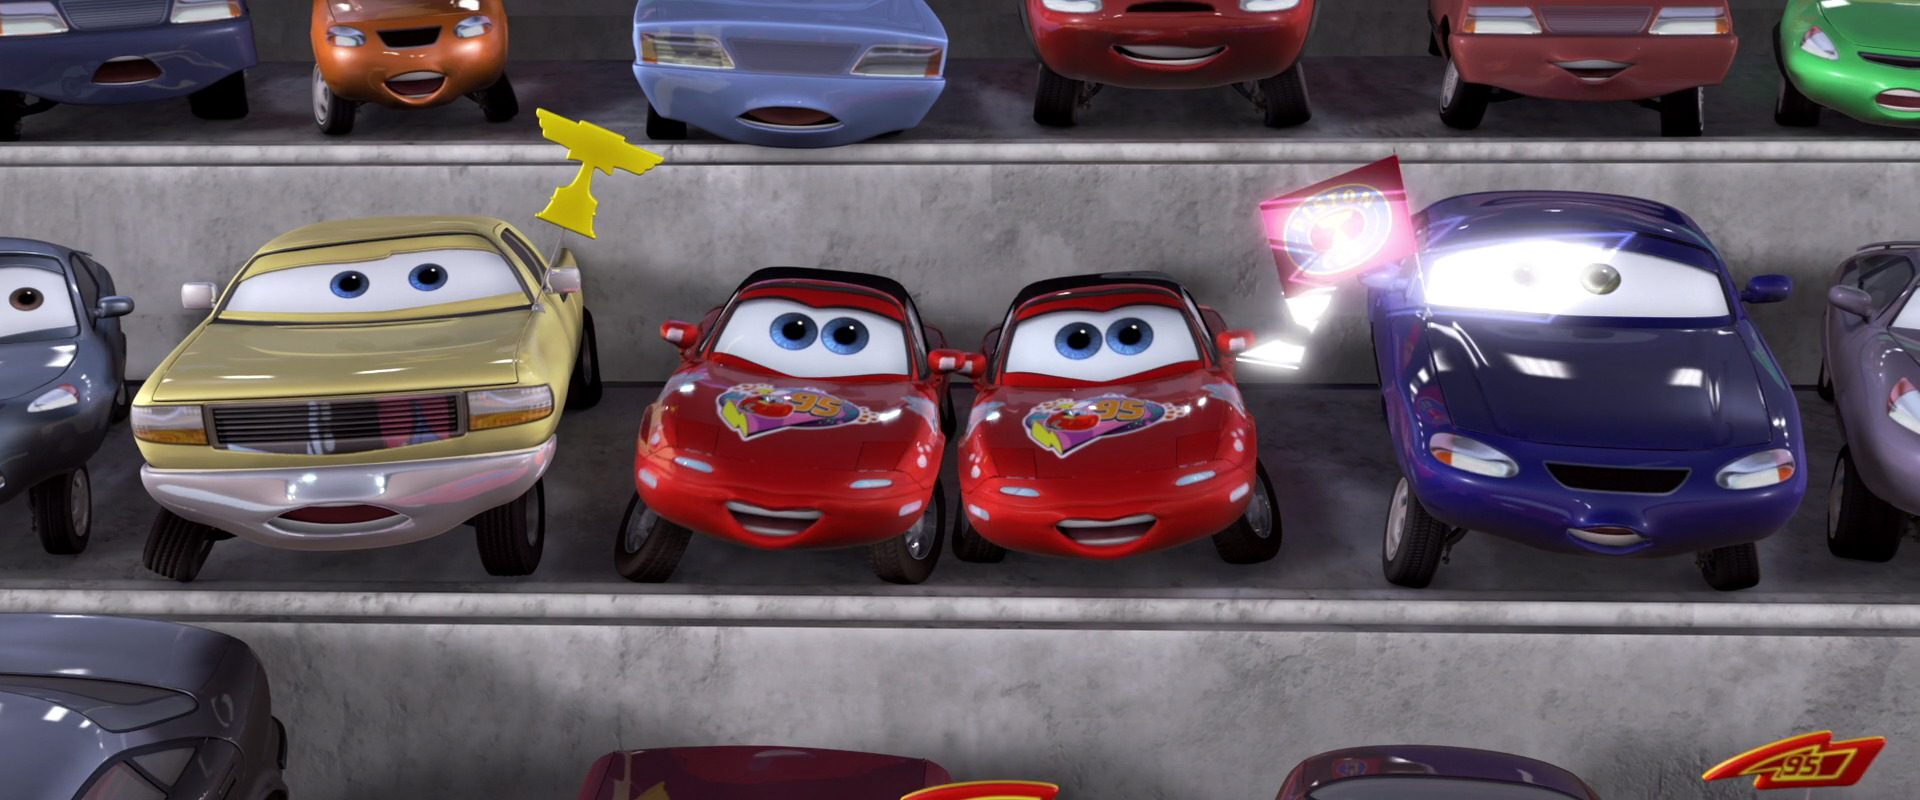 Cars  Disney Wiki  FANDOM powered by Wikia